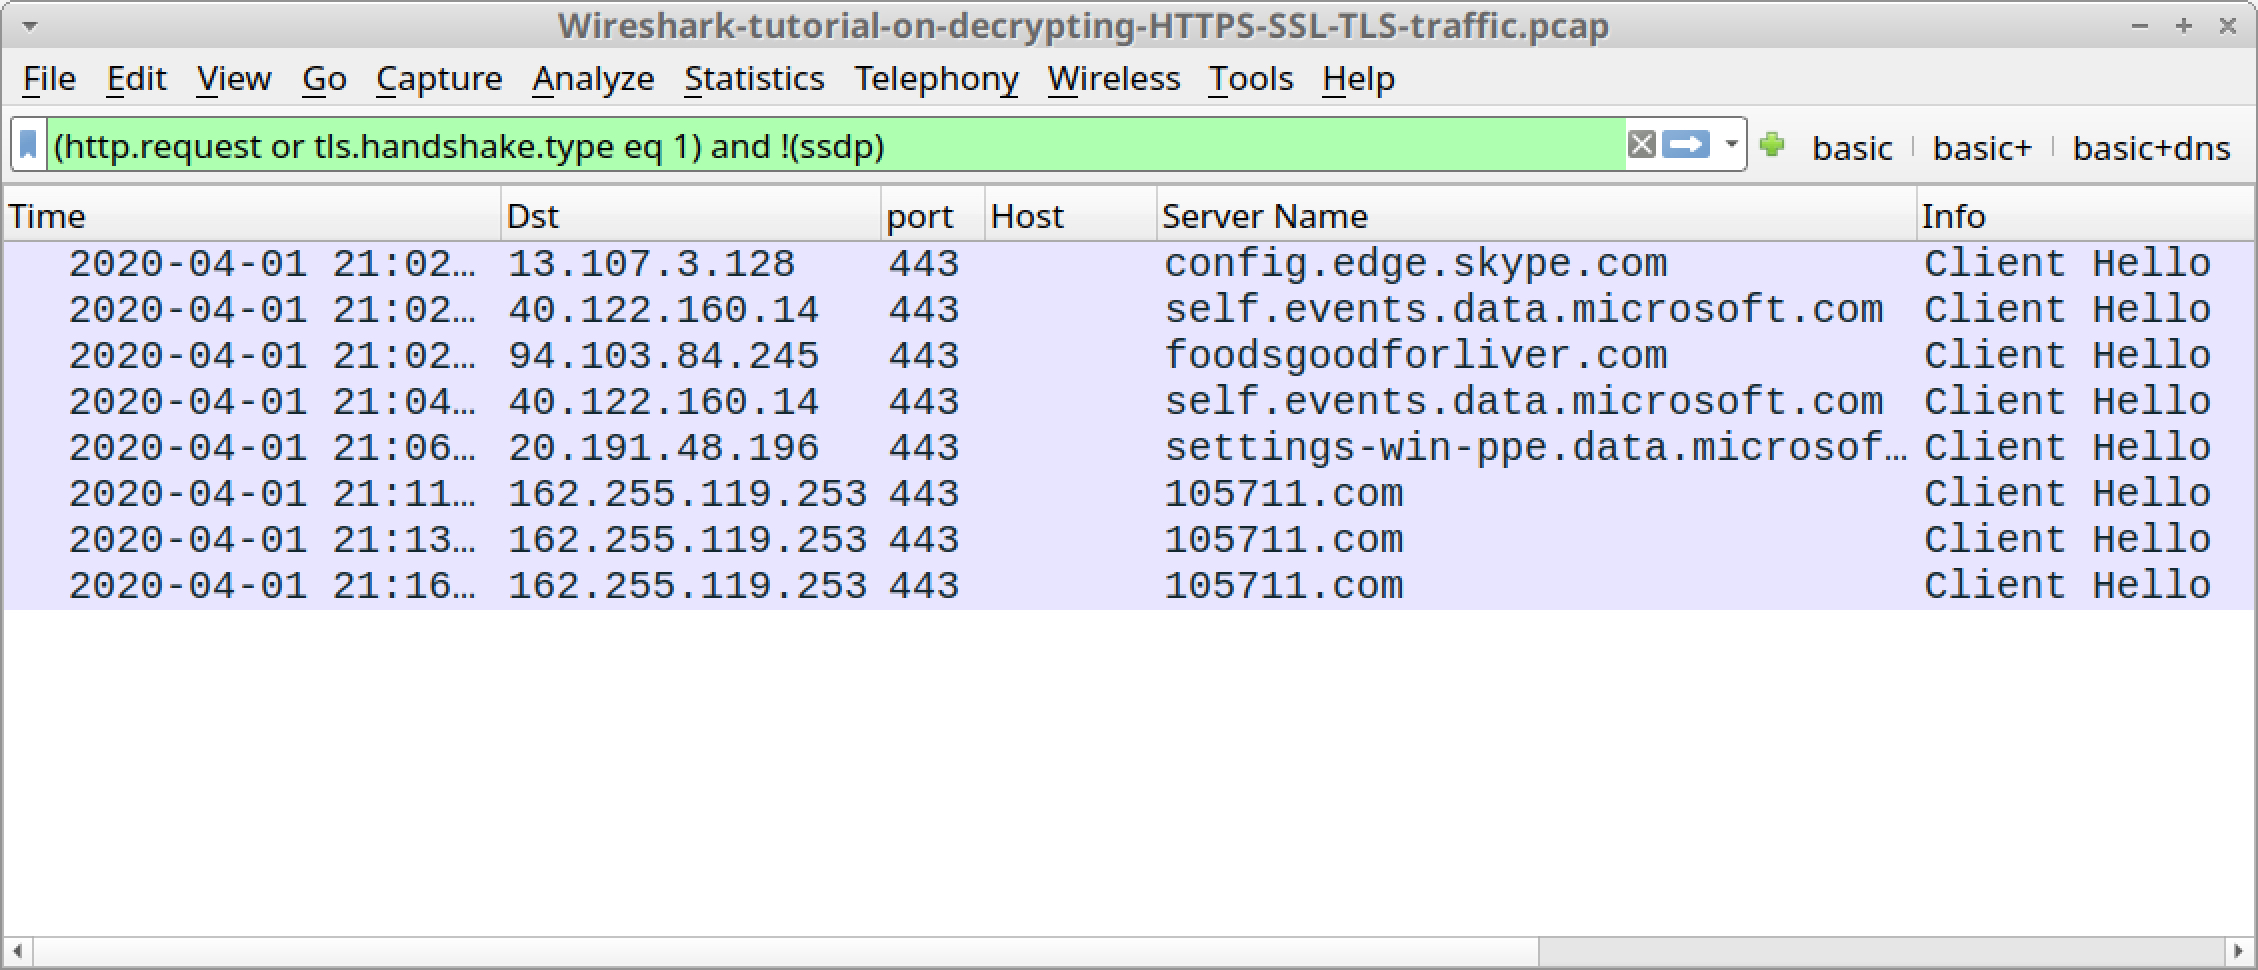 Wireshark-tutorial-on-decrypting-HTTPS-SSL-TLS-traffic.zip - This screenshot shows the pcap from the tutorial on decrypting HTTPS traffic when viewed in Wireshark using the basic web filter without any decryption.